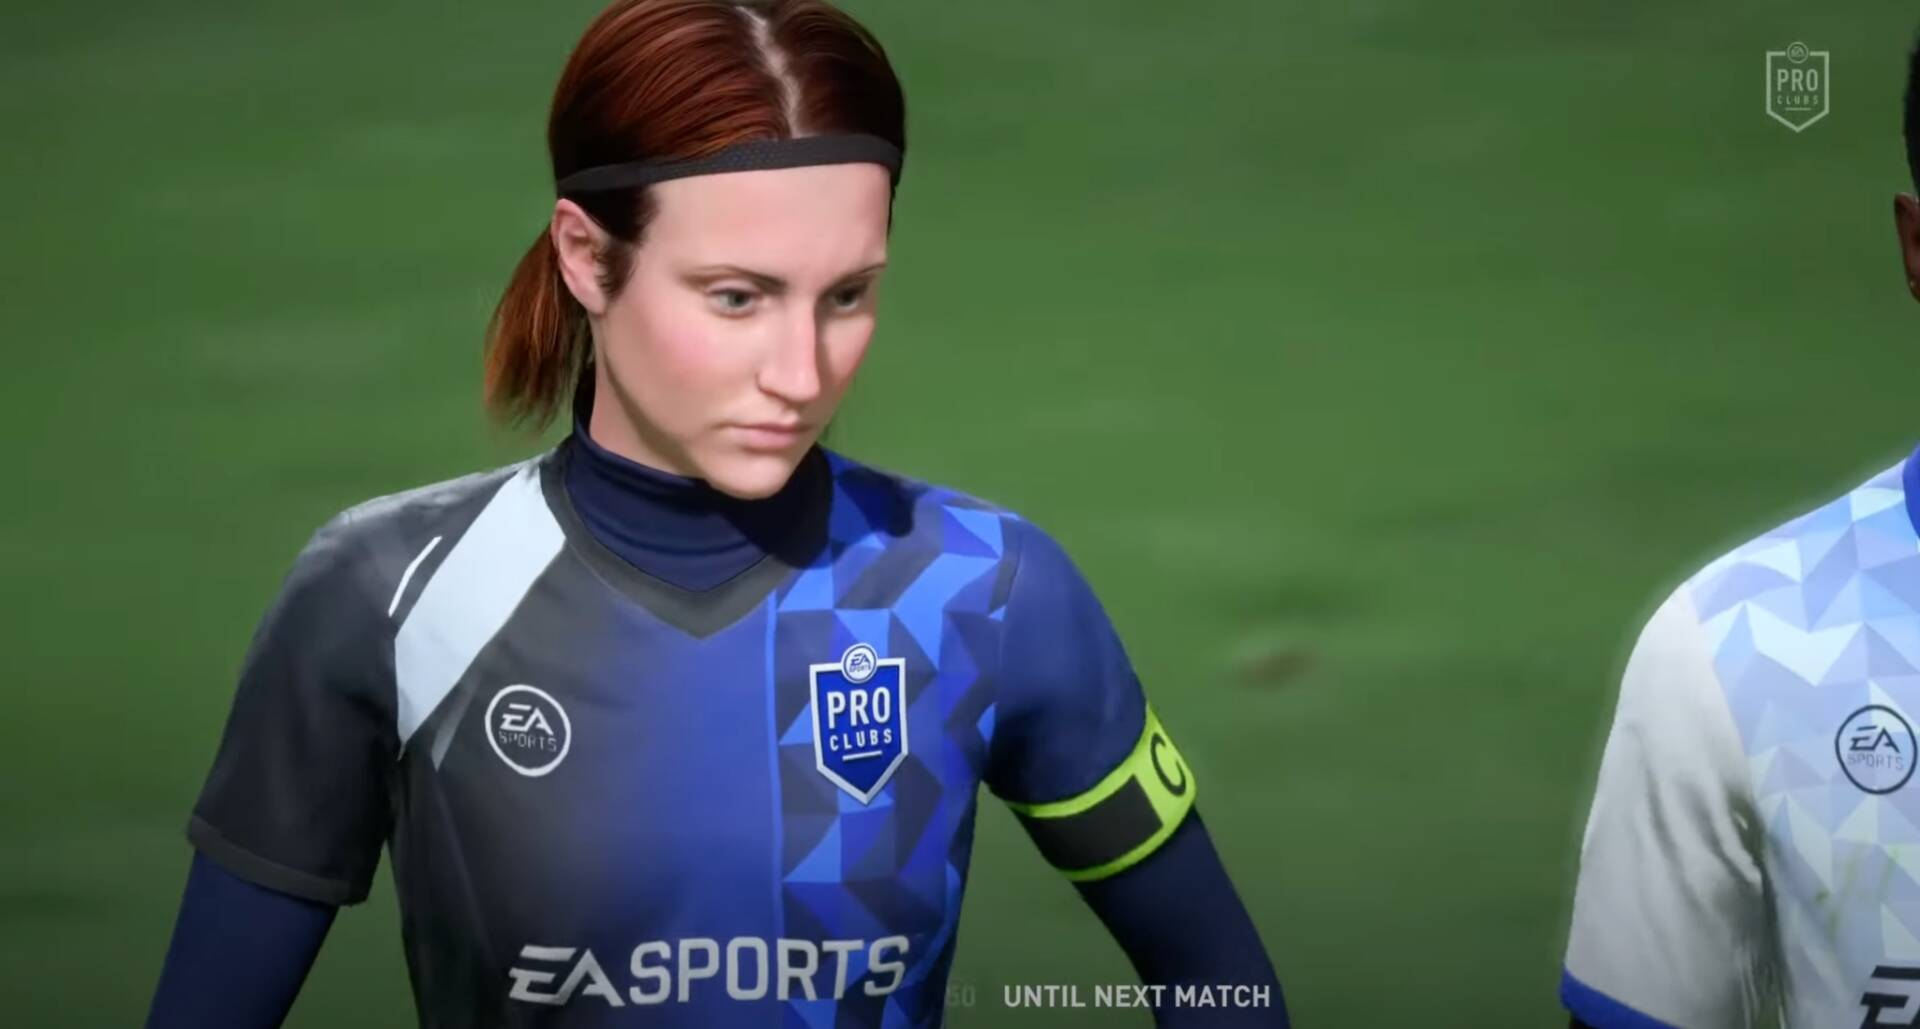 FIFA 22, the players will give men a hard time